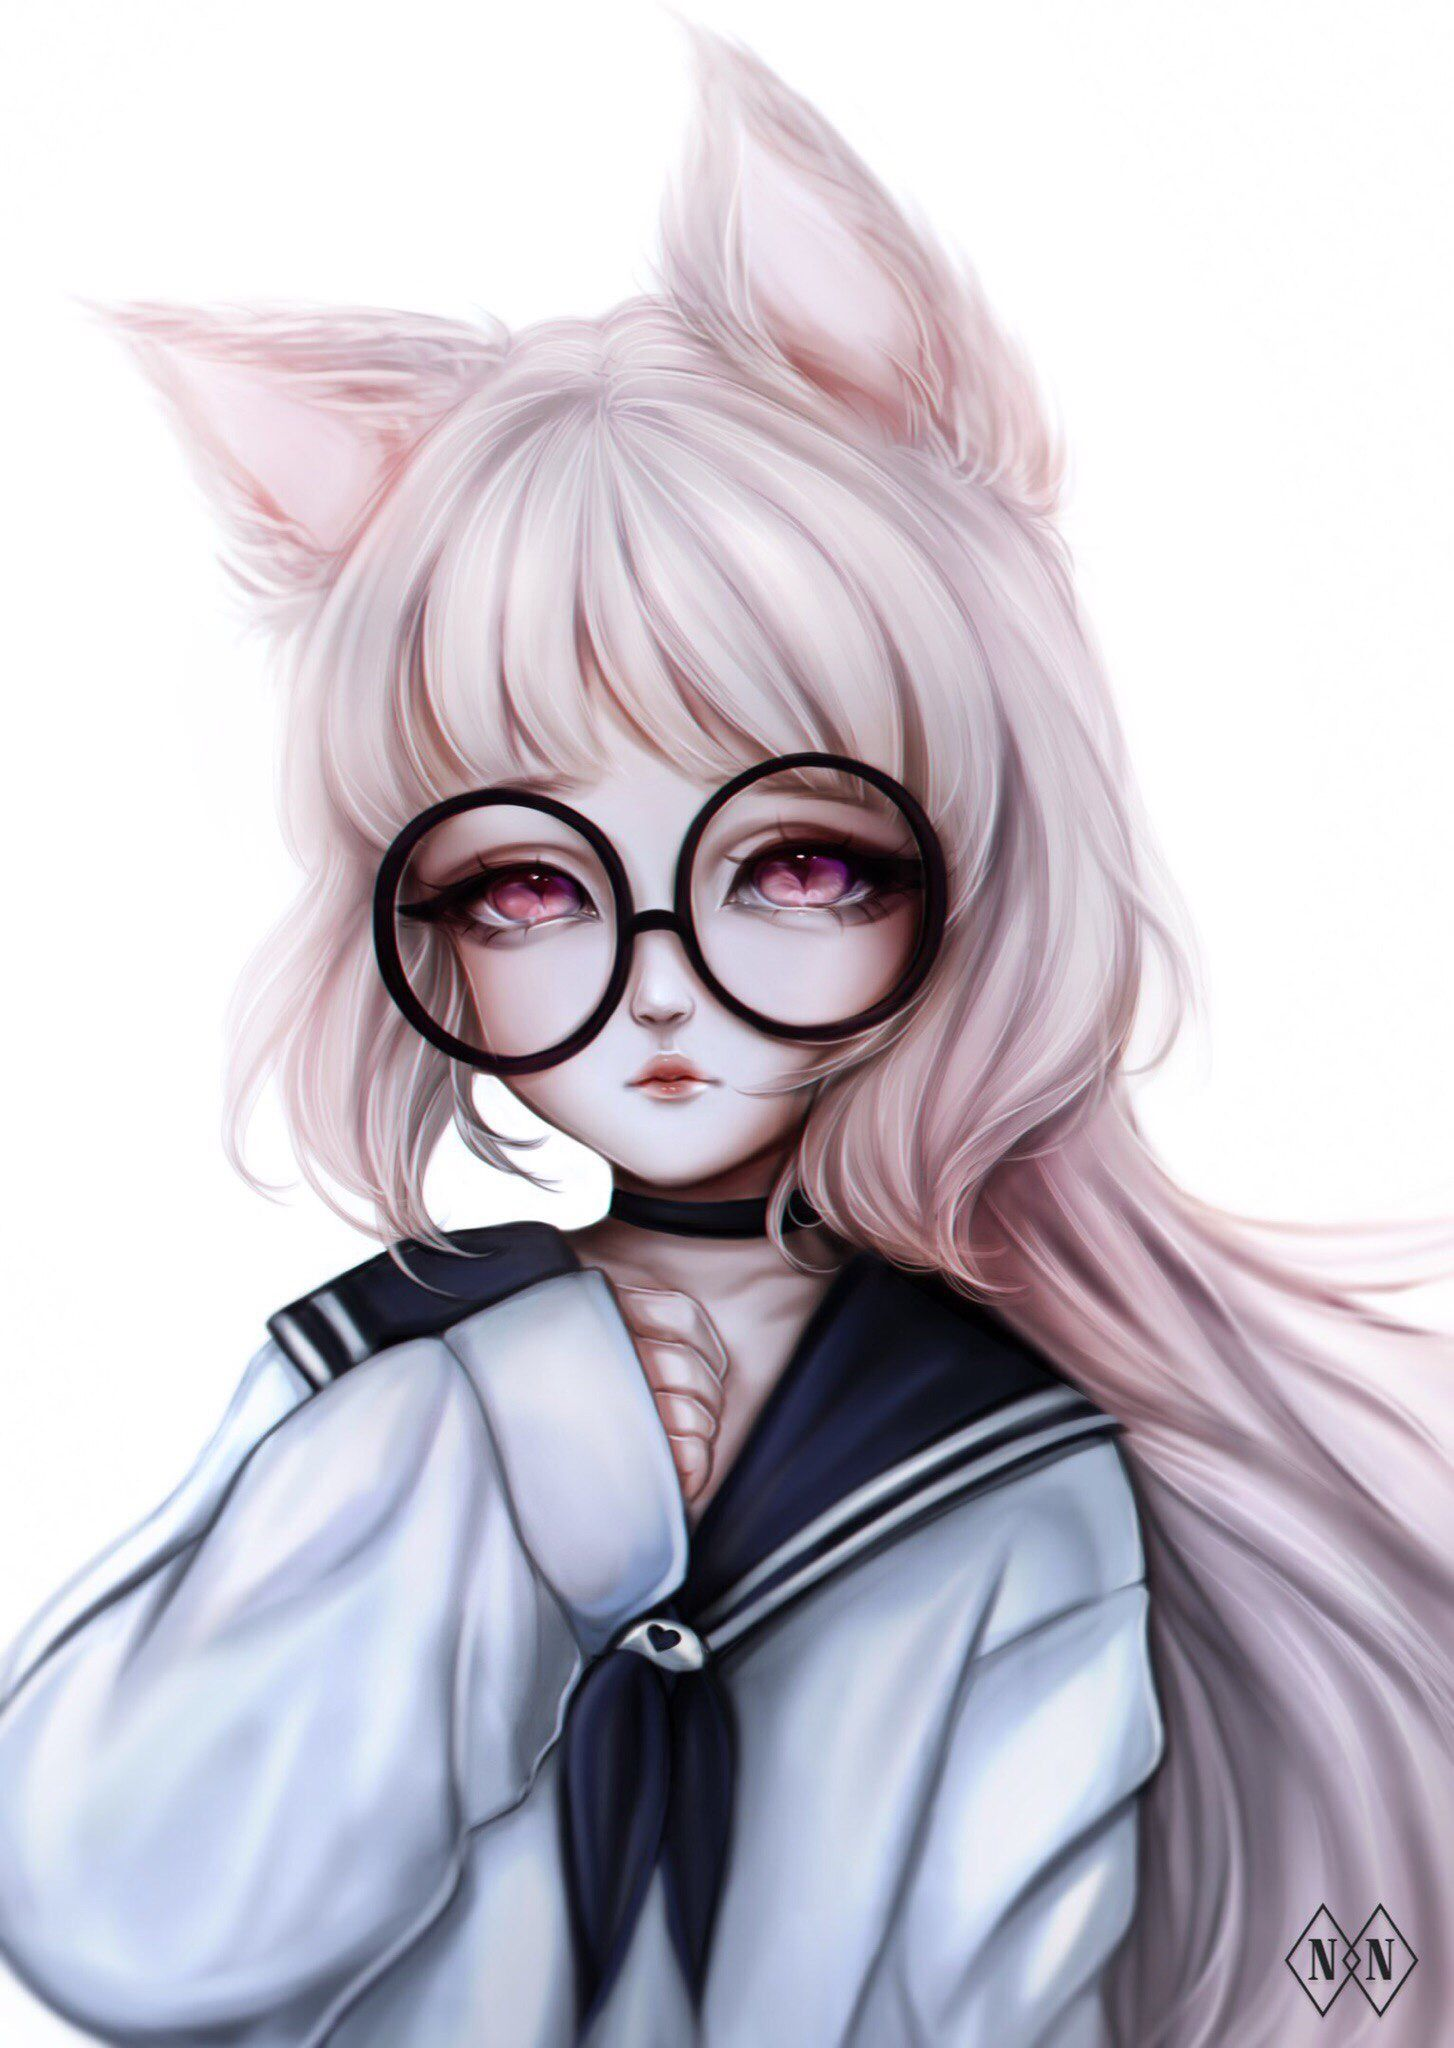 Pin by Anett on Pink baby | Pinterest | Anime, Neko and Kawaii